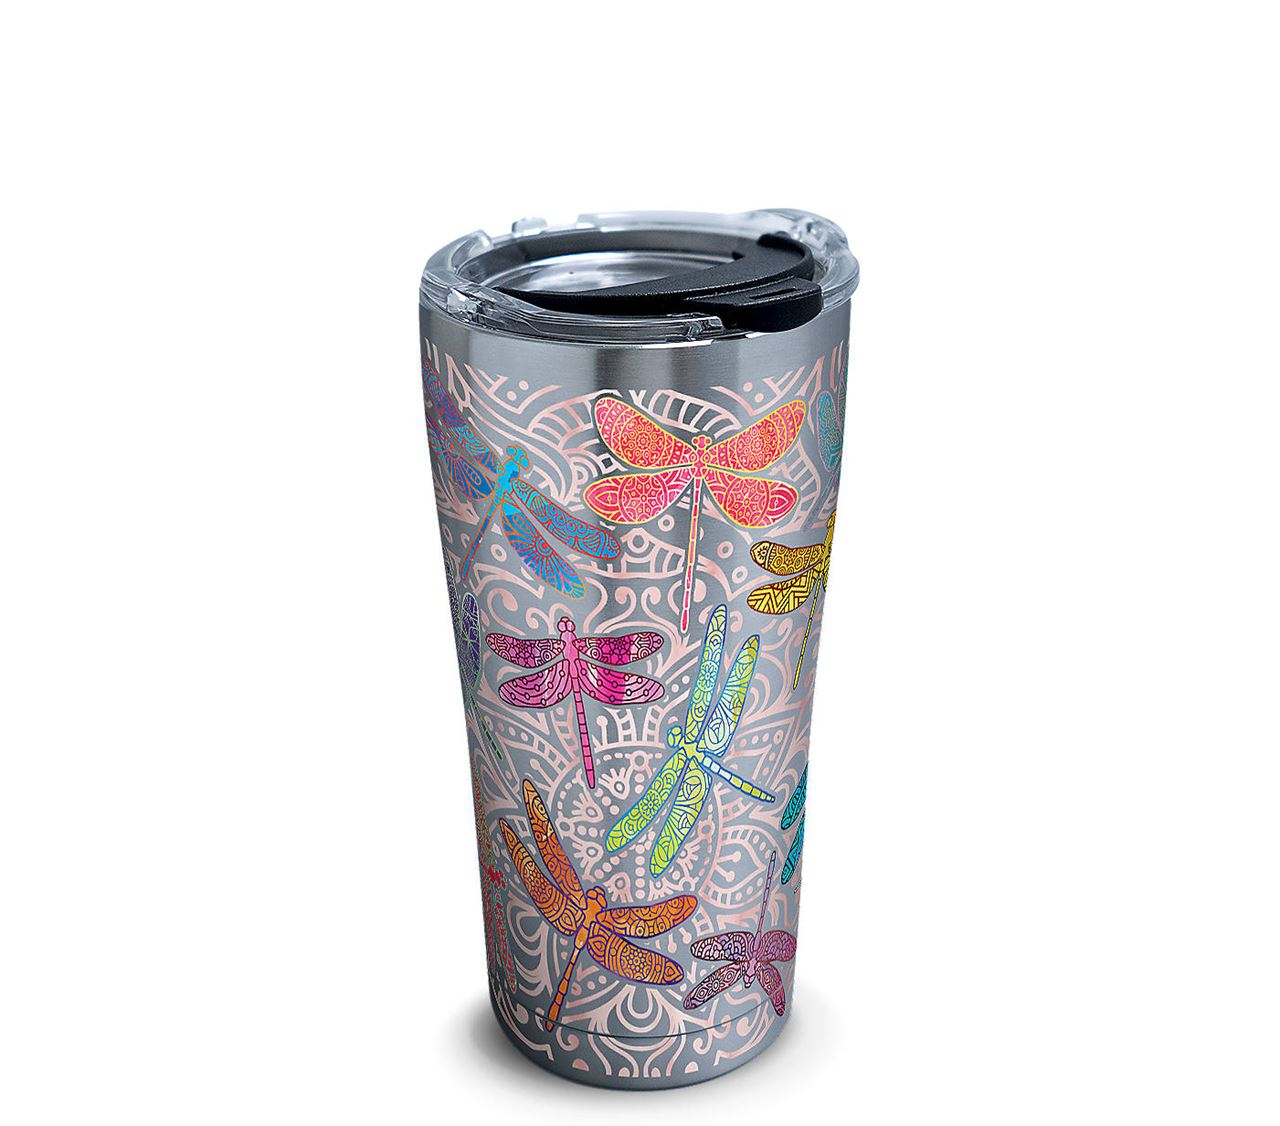 Dragonfly Mandala 20oz. Stainless Steel Tumbler by Tervis